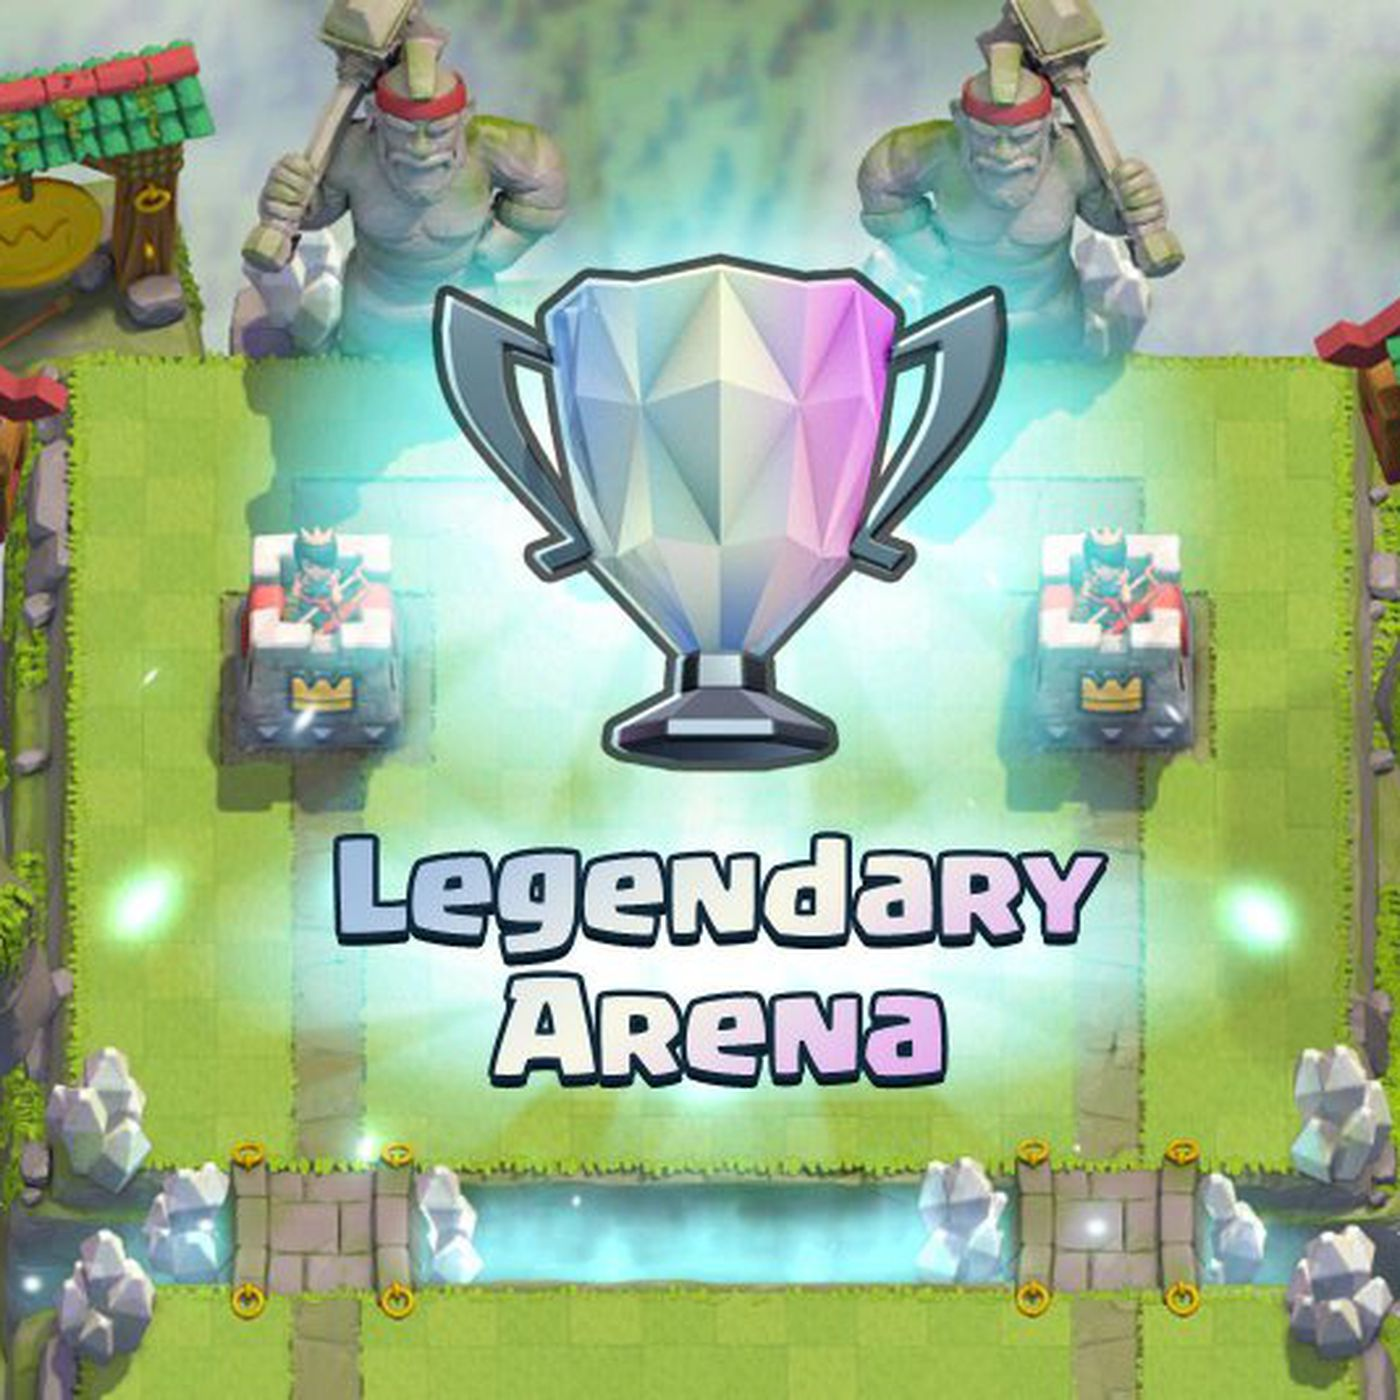 Clash Royale's top-ranked player has spent over $12,000 on